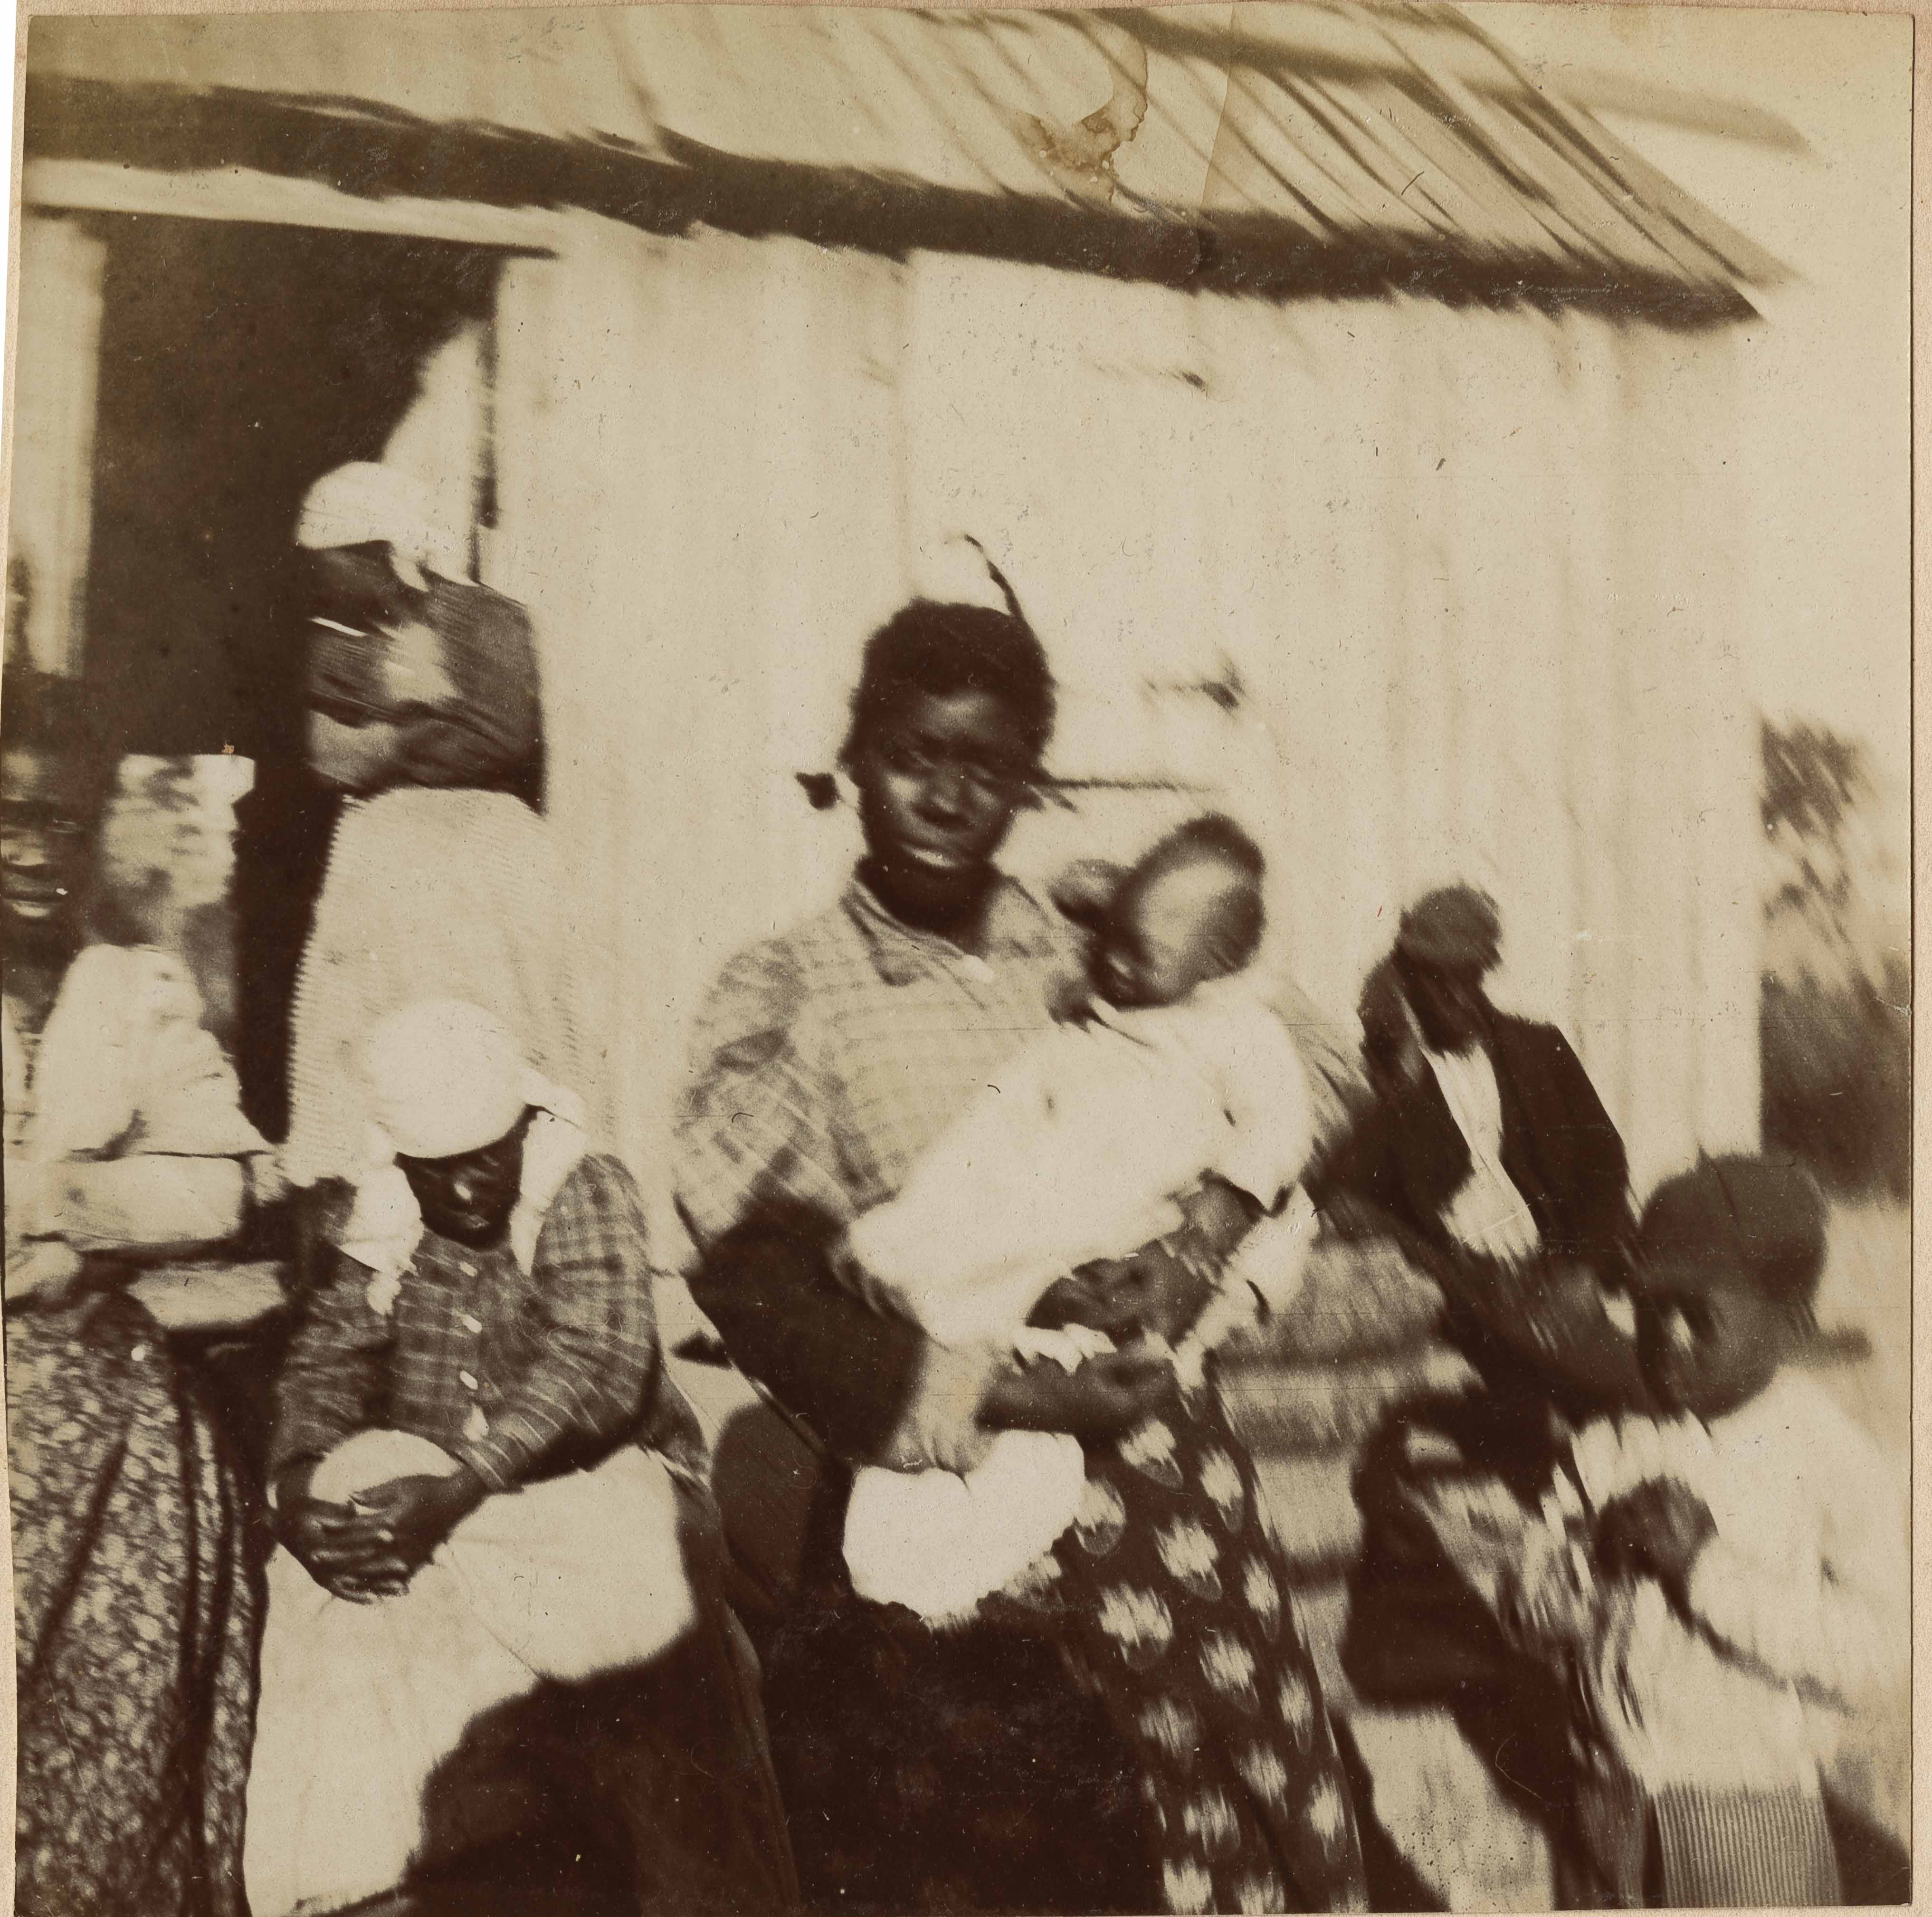 Girl holding baby surrounded by children and women in head scarves